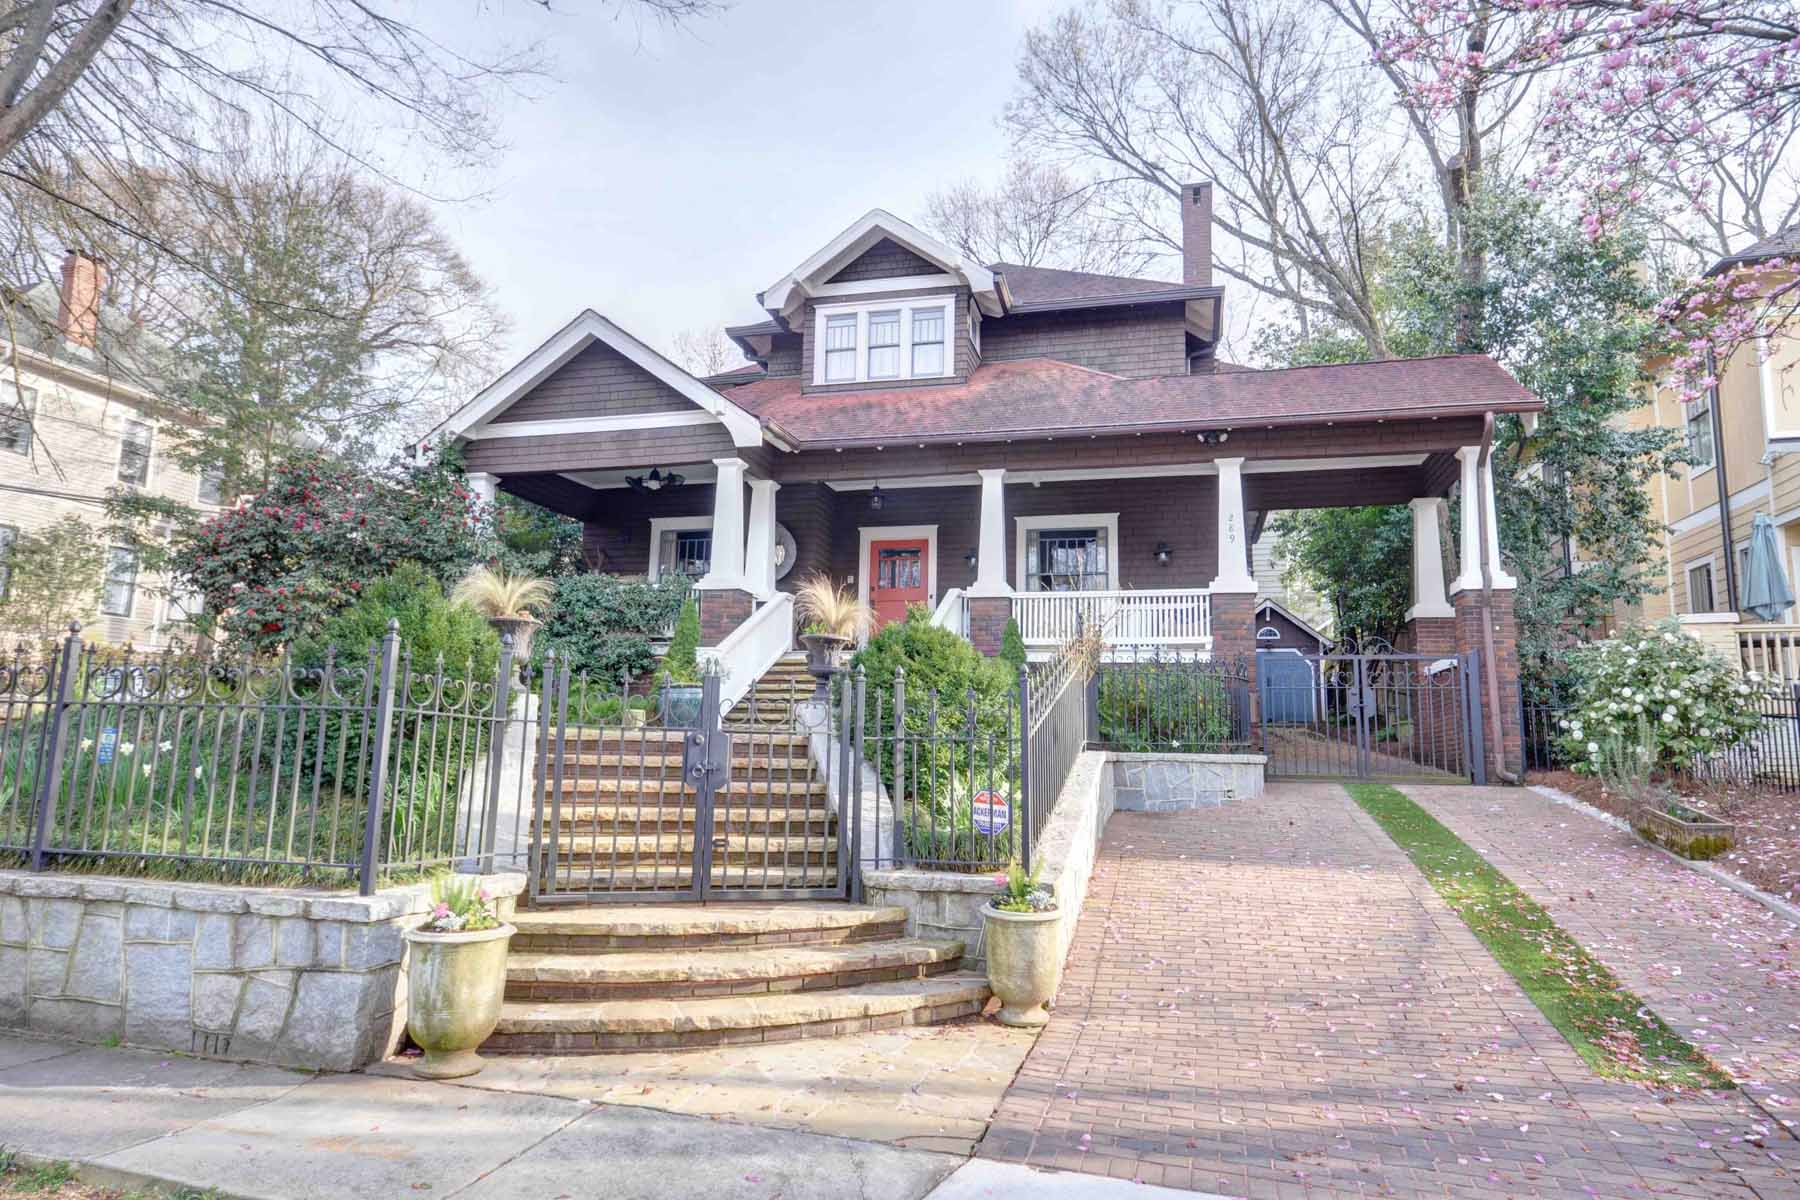 Single Family Home for Sale at Completely Renovated Classic Midtown Home on a Premier Street. 289 9th Street NE Midtown, Atlanta, Georgia, 30309 United States